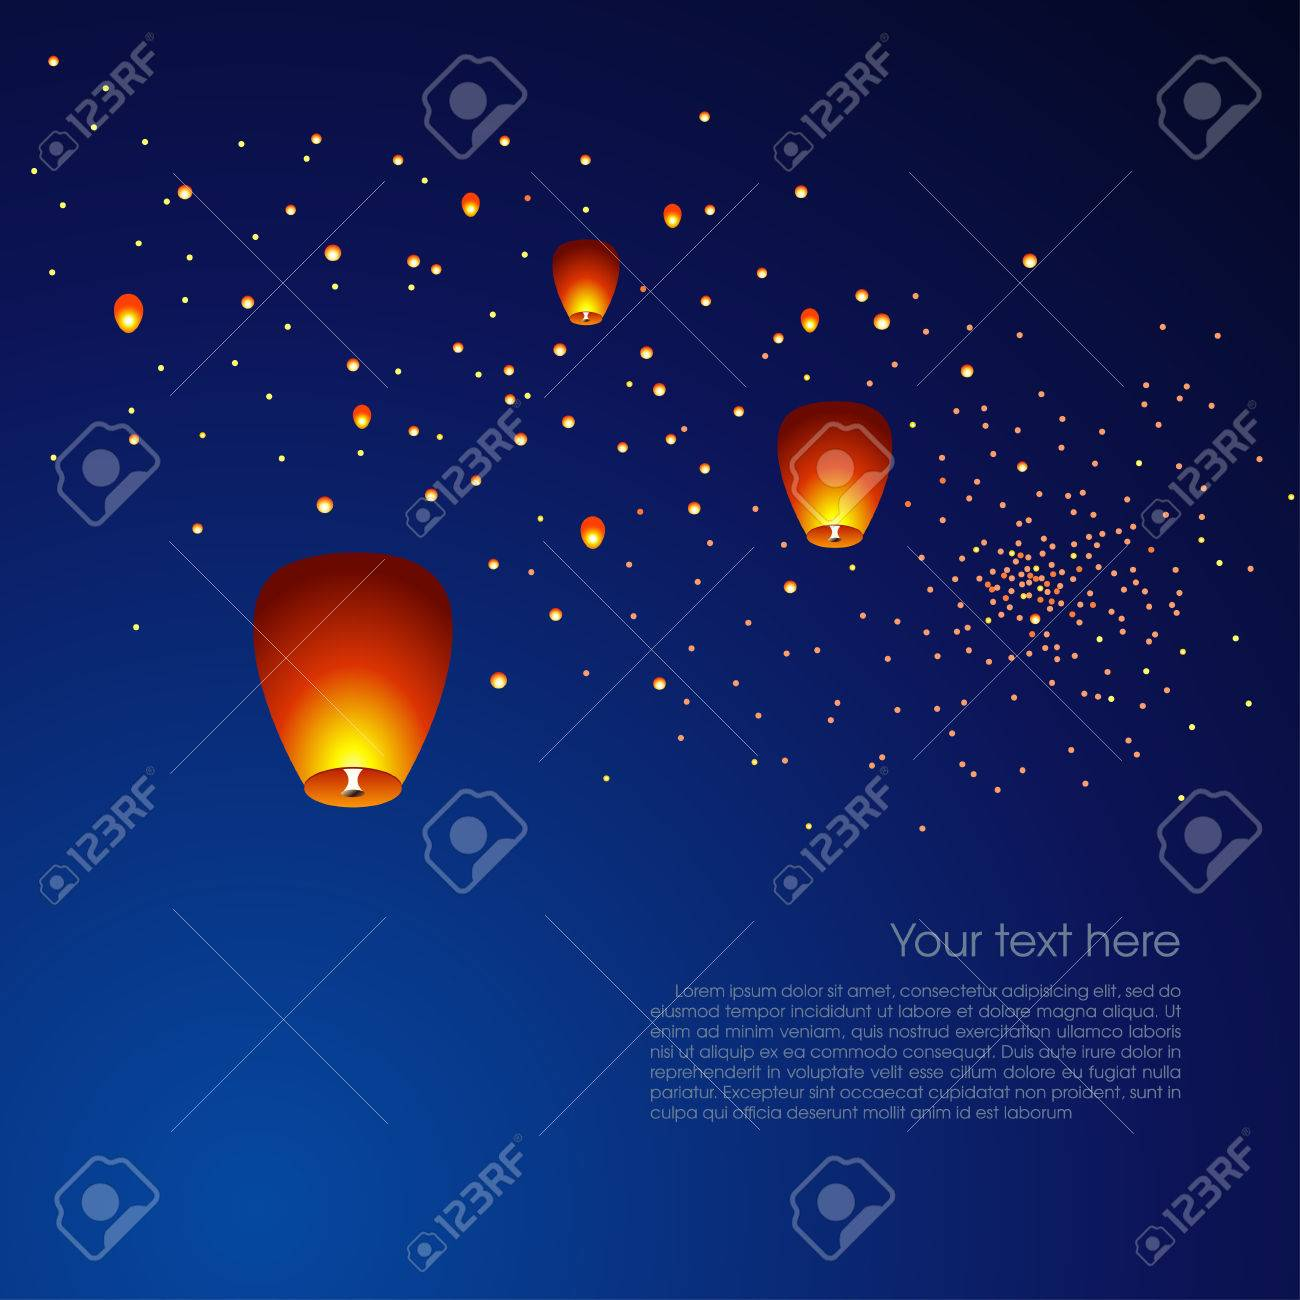 Chinese Sky Lanterns Floating In A Dark Night Sky Vector Illustration Royalty Free Cliparts Vectors And Stock Illustration Image 47194187